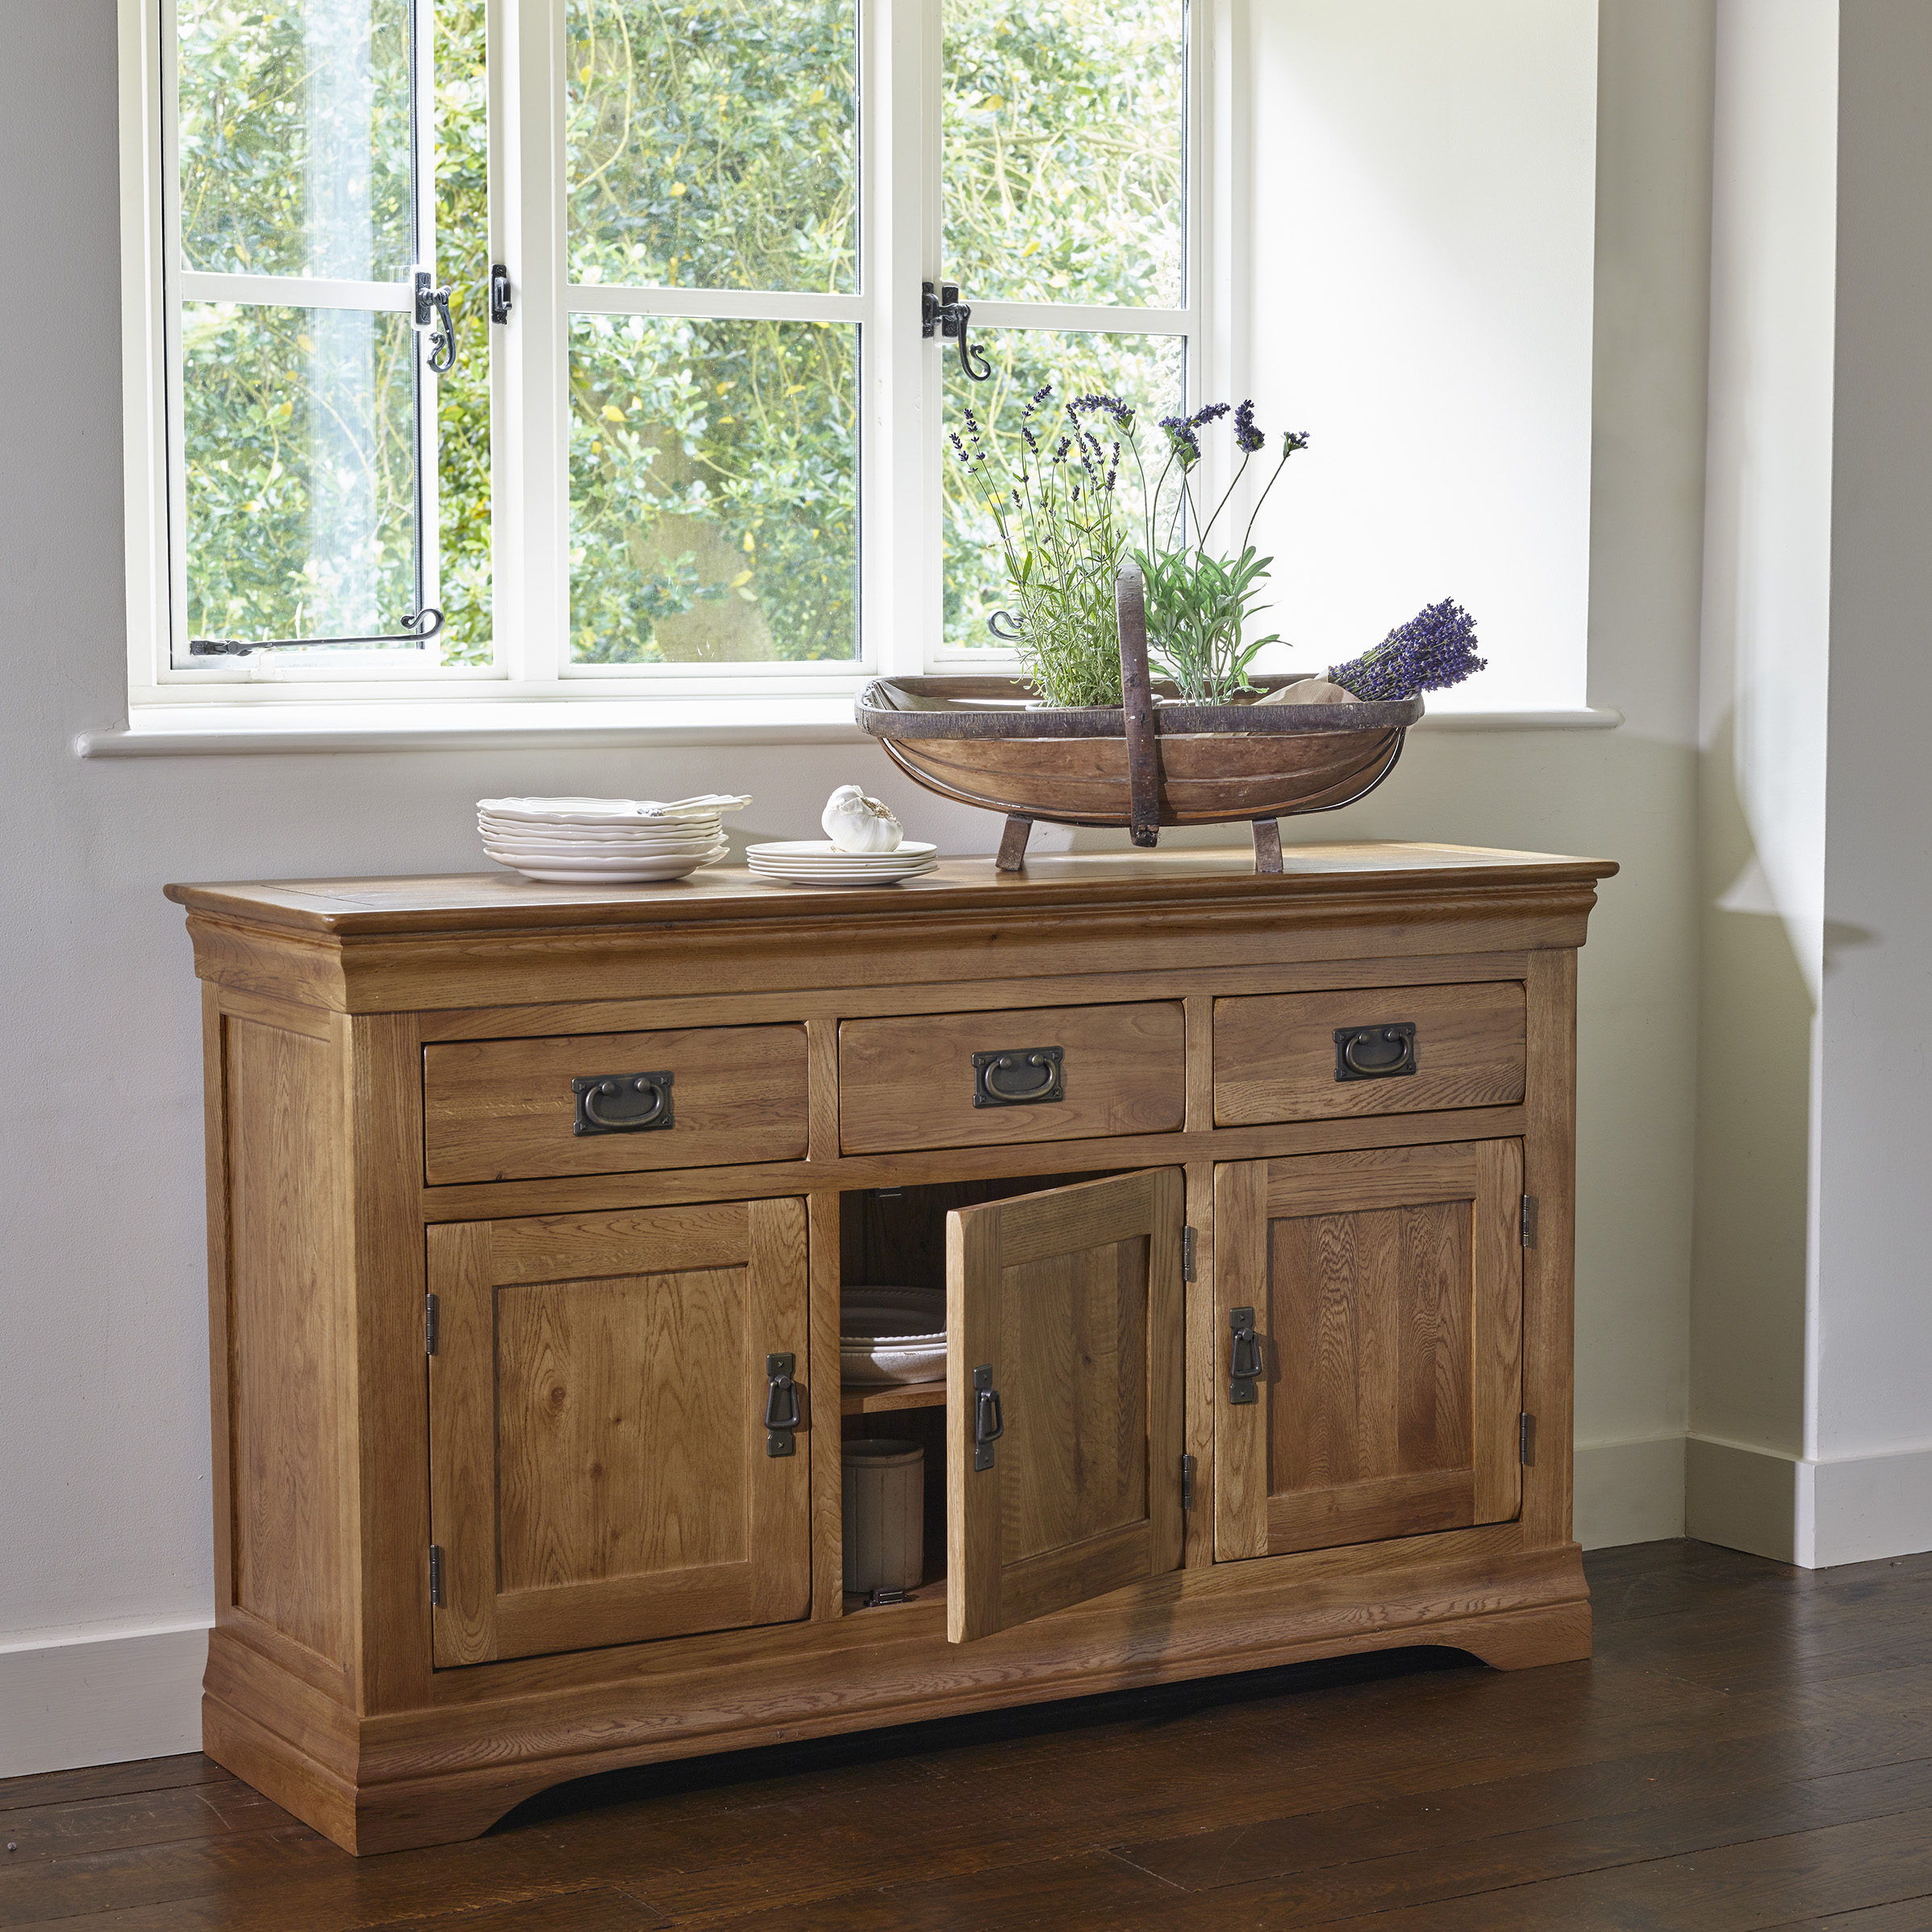 SHA015SQDO116 How To Style Your Sideboard